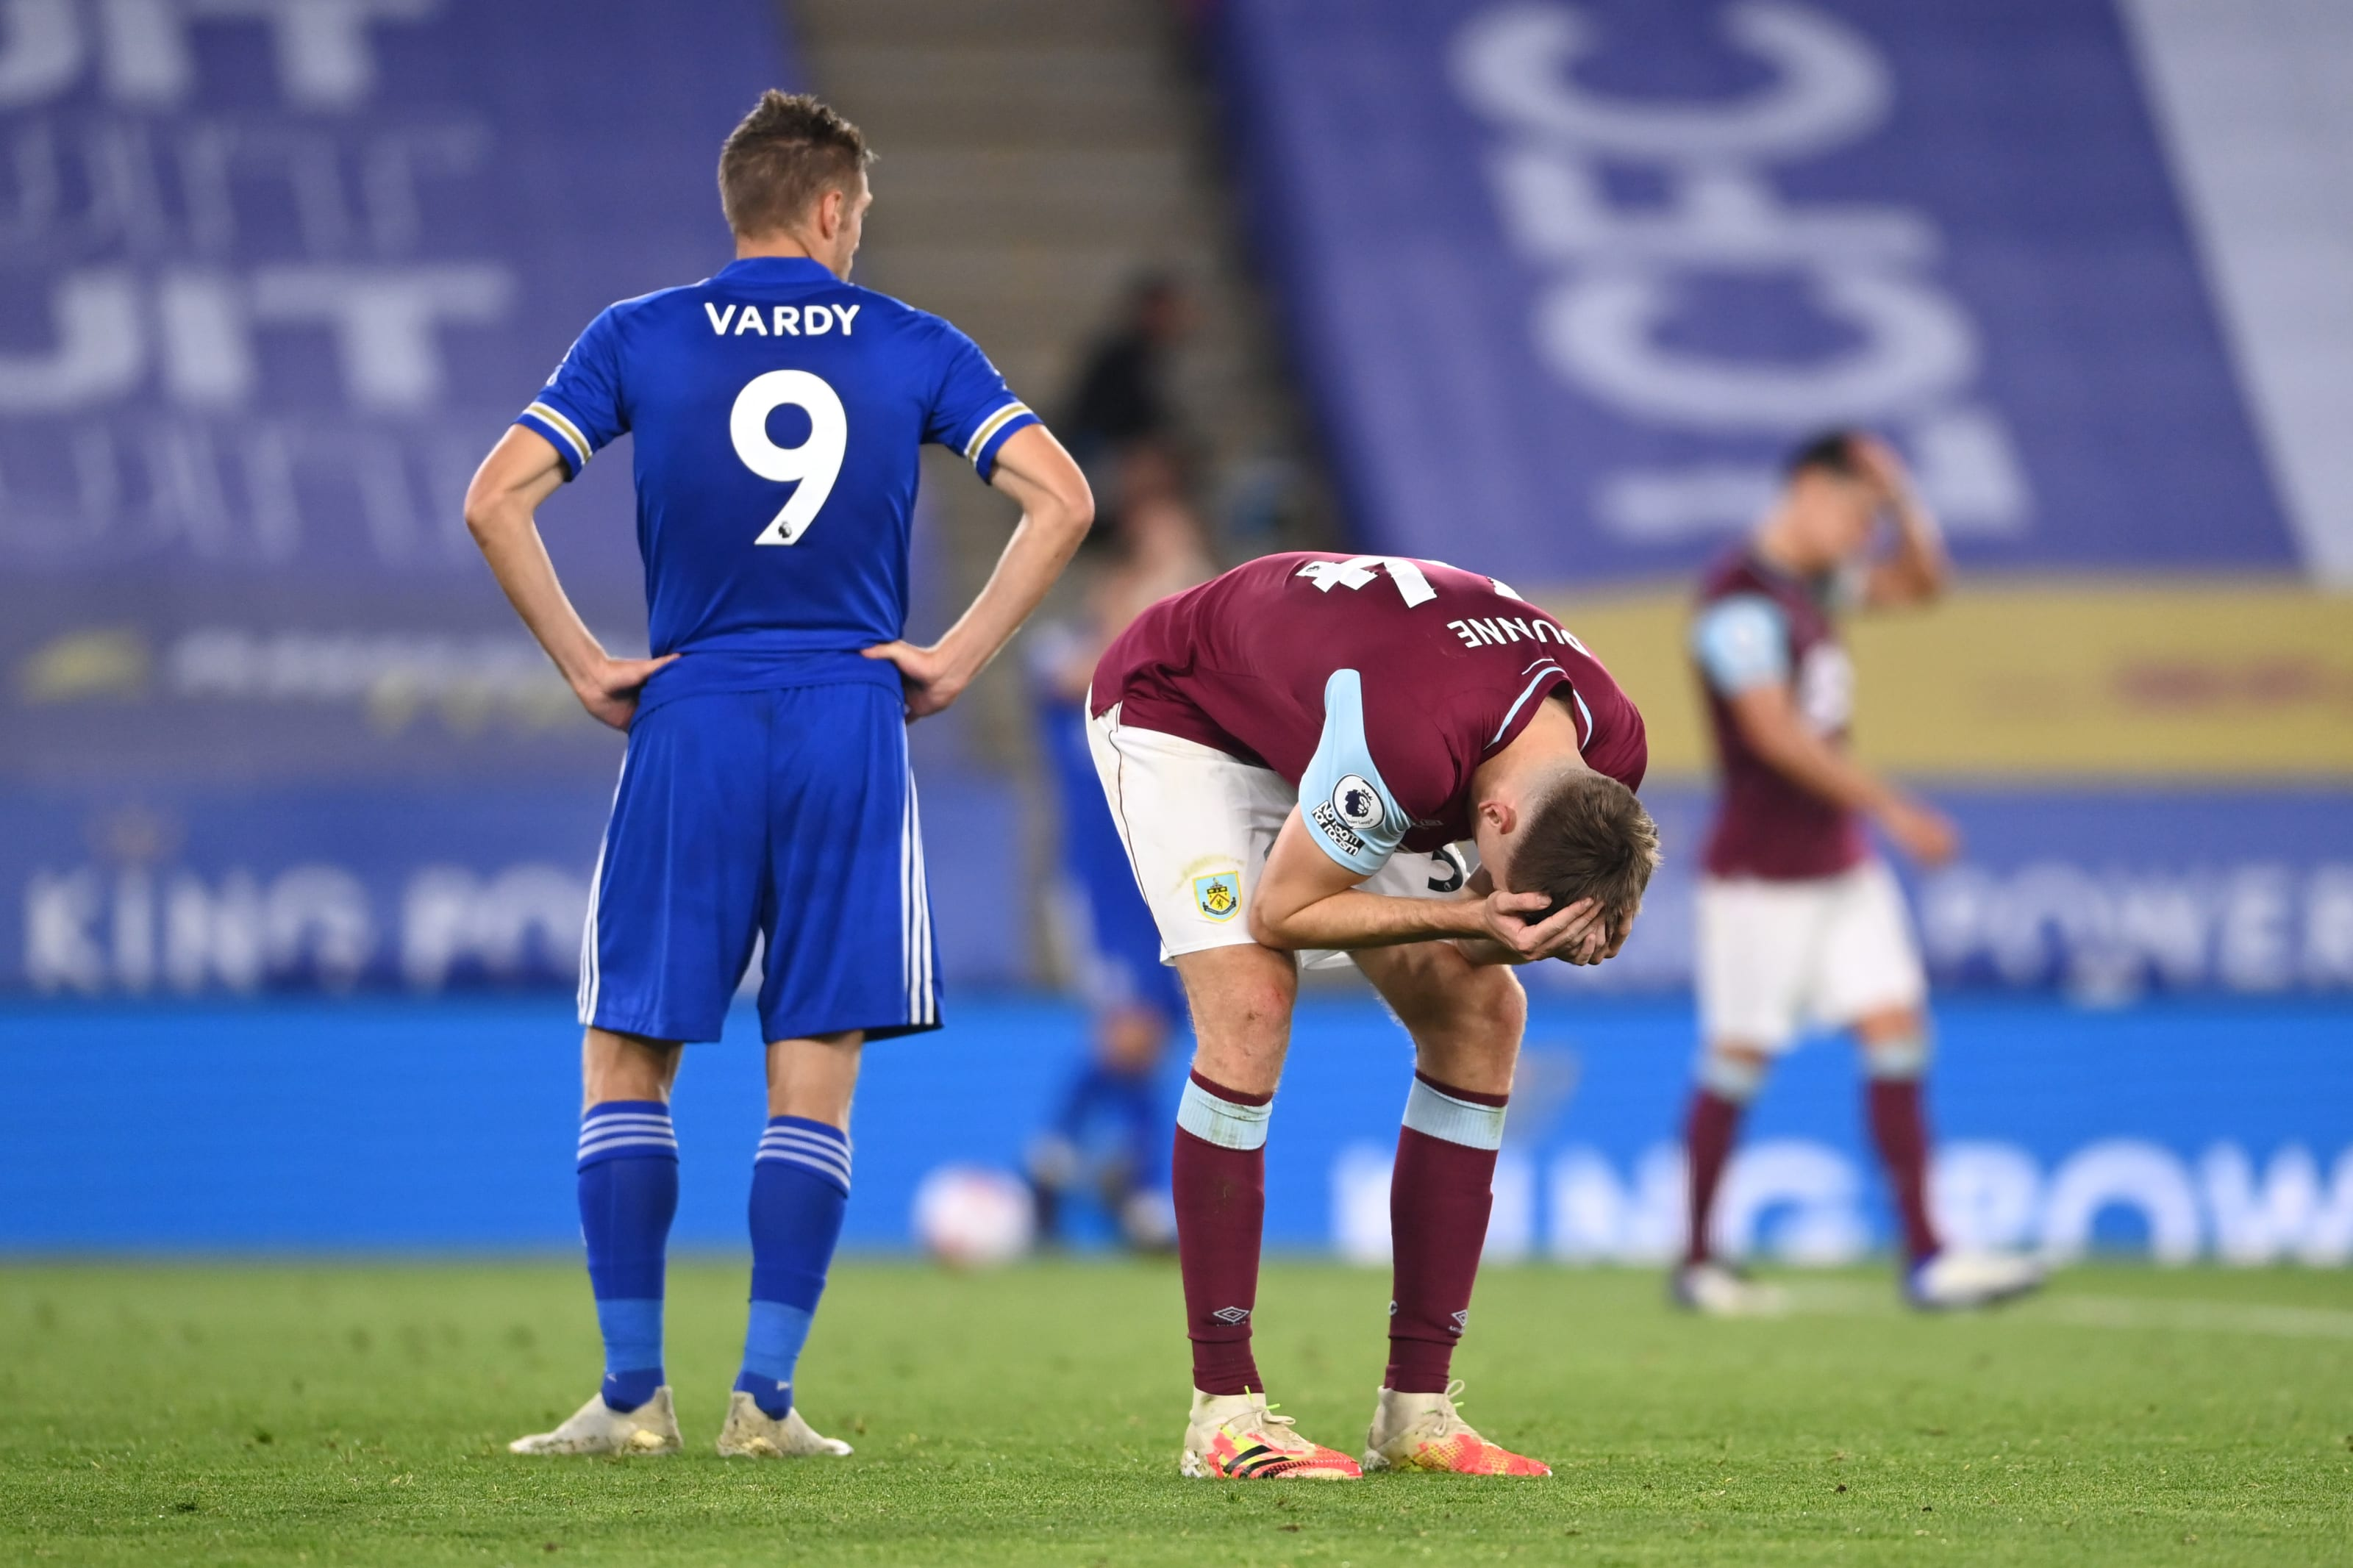 burnley vs leicester city - photo #14